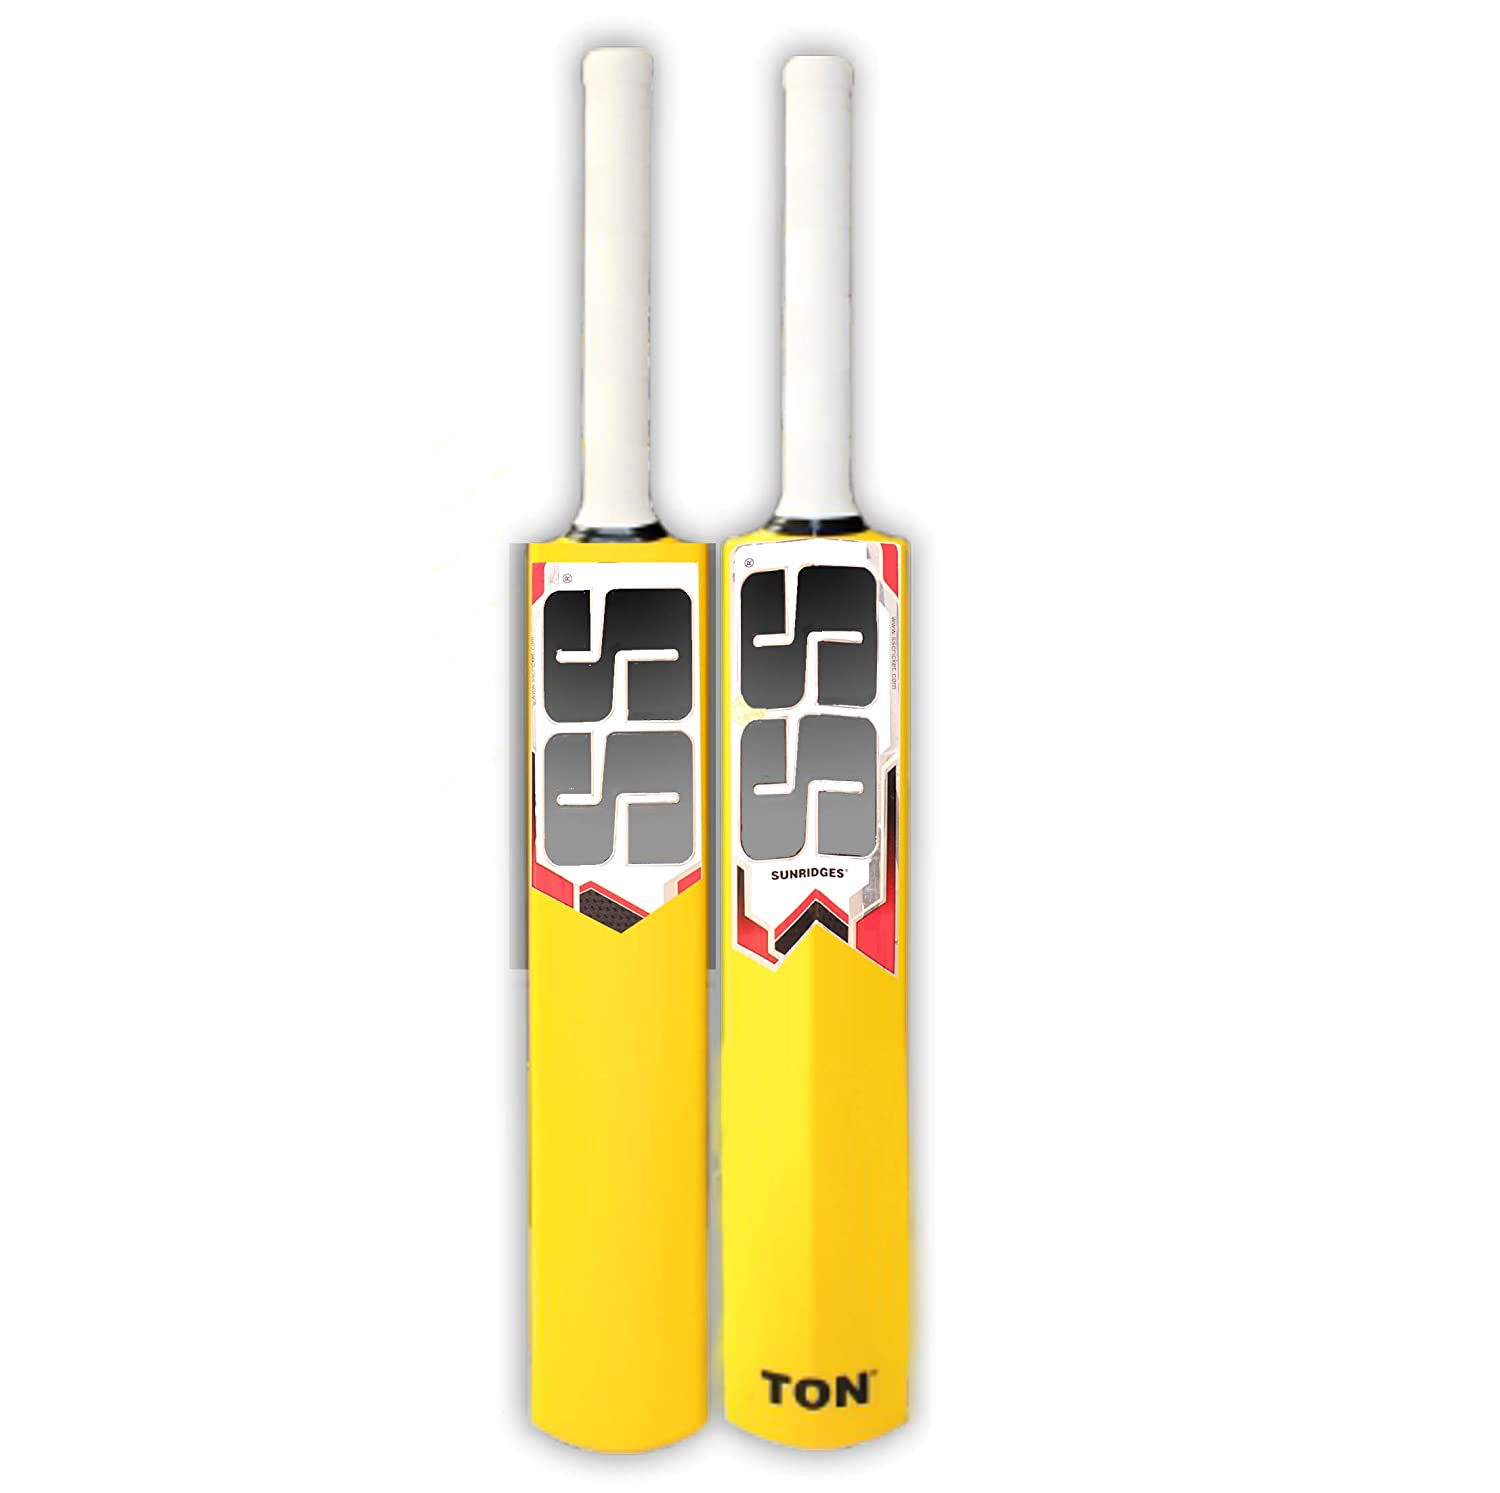 SS Ton plastic Cricket Bat